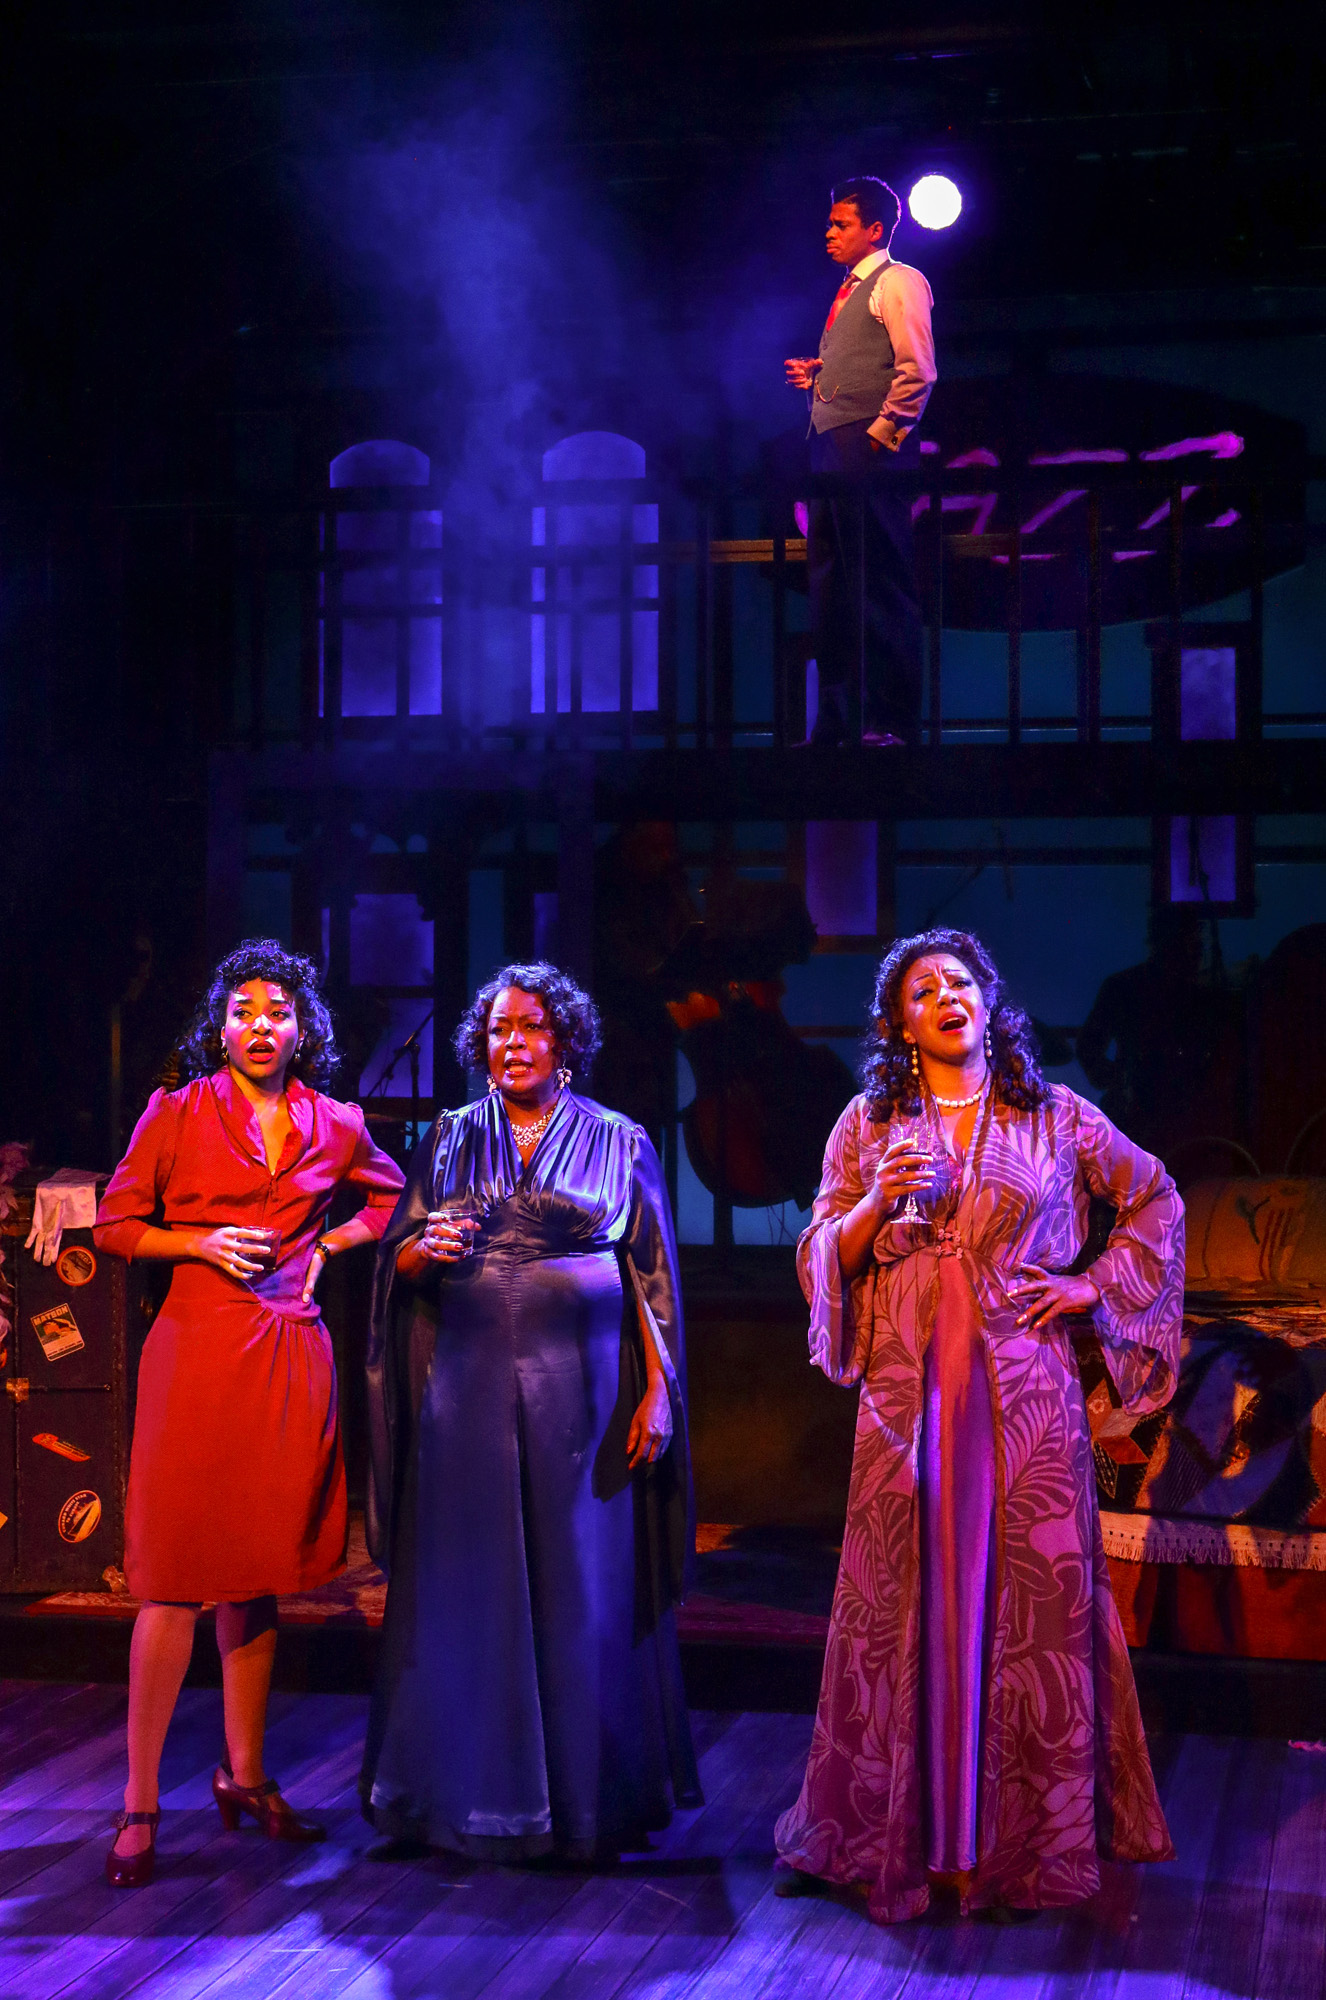 Bryce Charles (The Girl With A Date), Yvette Cason (The Lady From The Road), Paulette Ivory (The Woman Of The World), Chester Gregory (The Man In The Saloon). BLUES IN THE NIGHT. Photo Credit: Lawrence K. Ho.